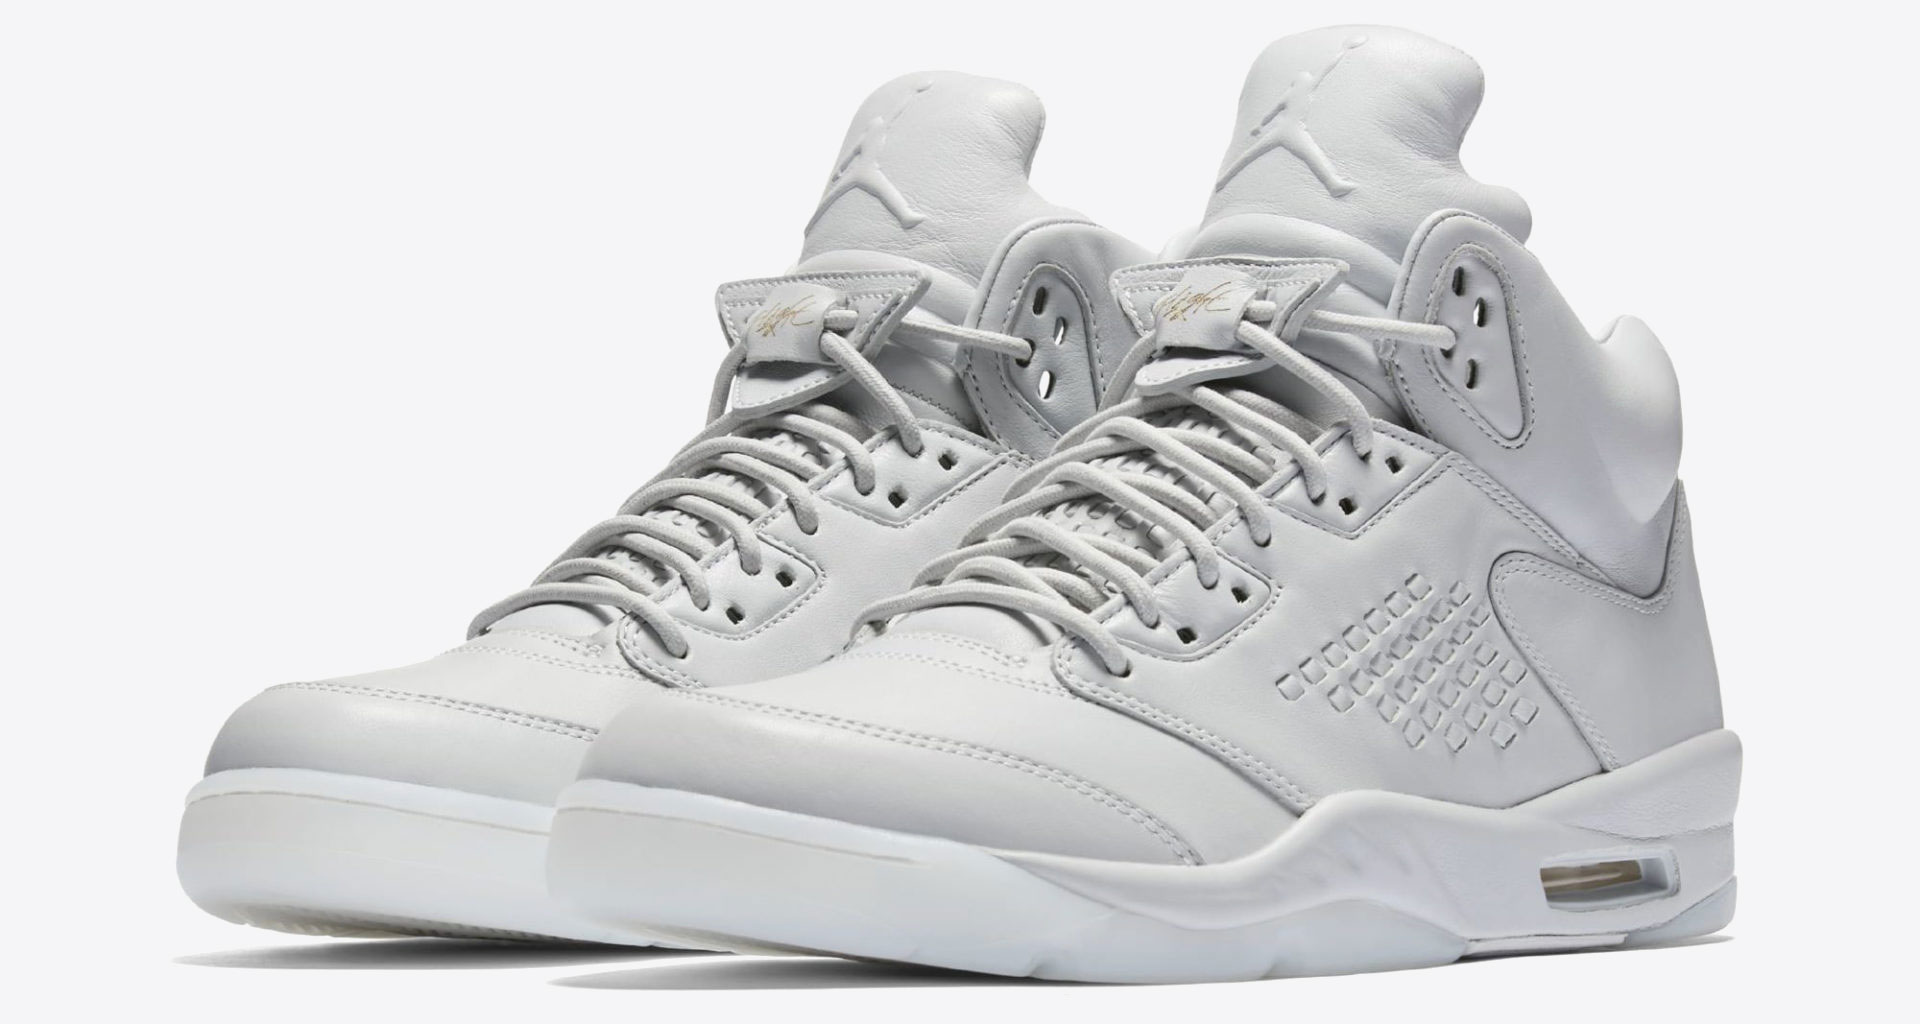 Air Jordan 5 Retro Premium Pure Money 881432 003 4